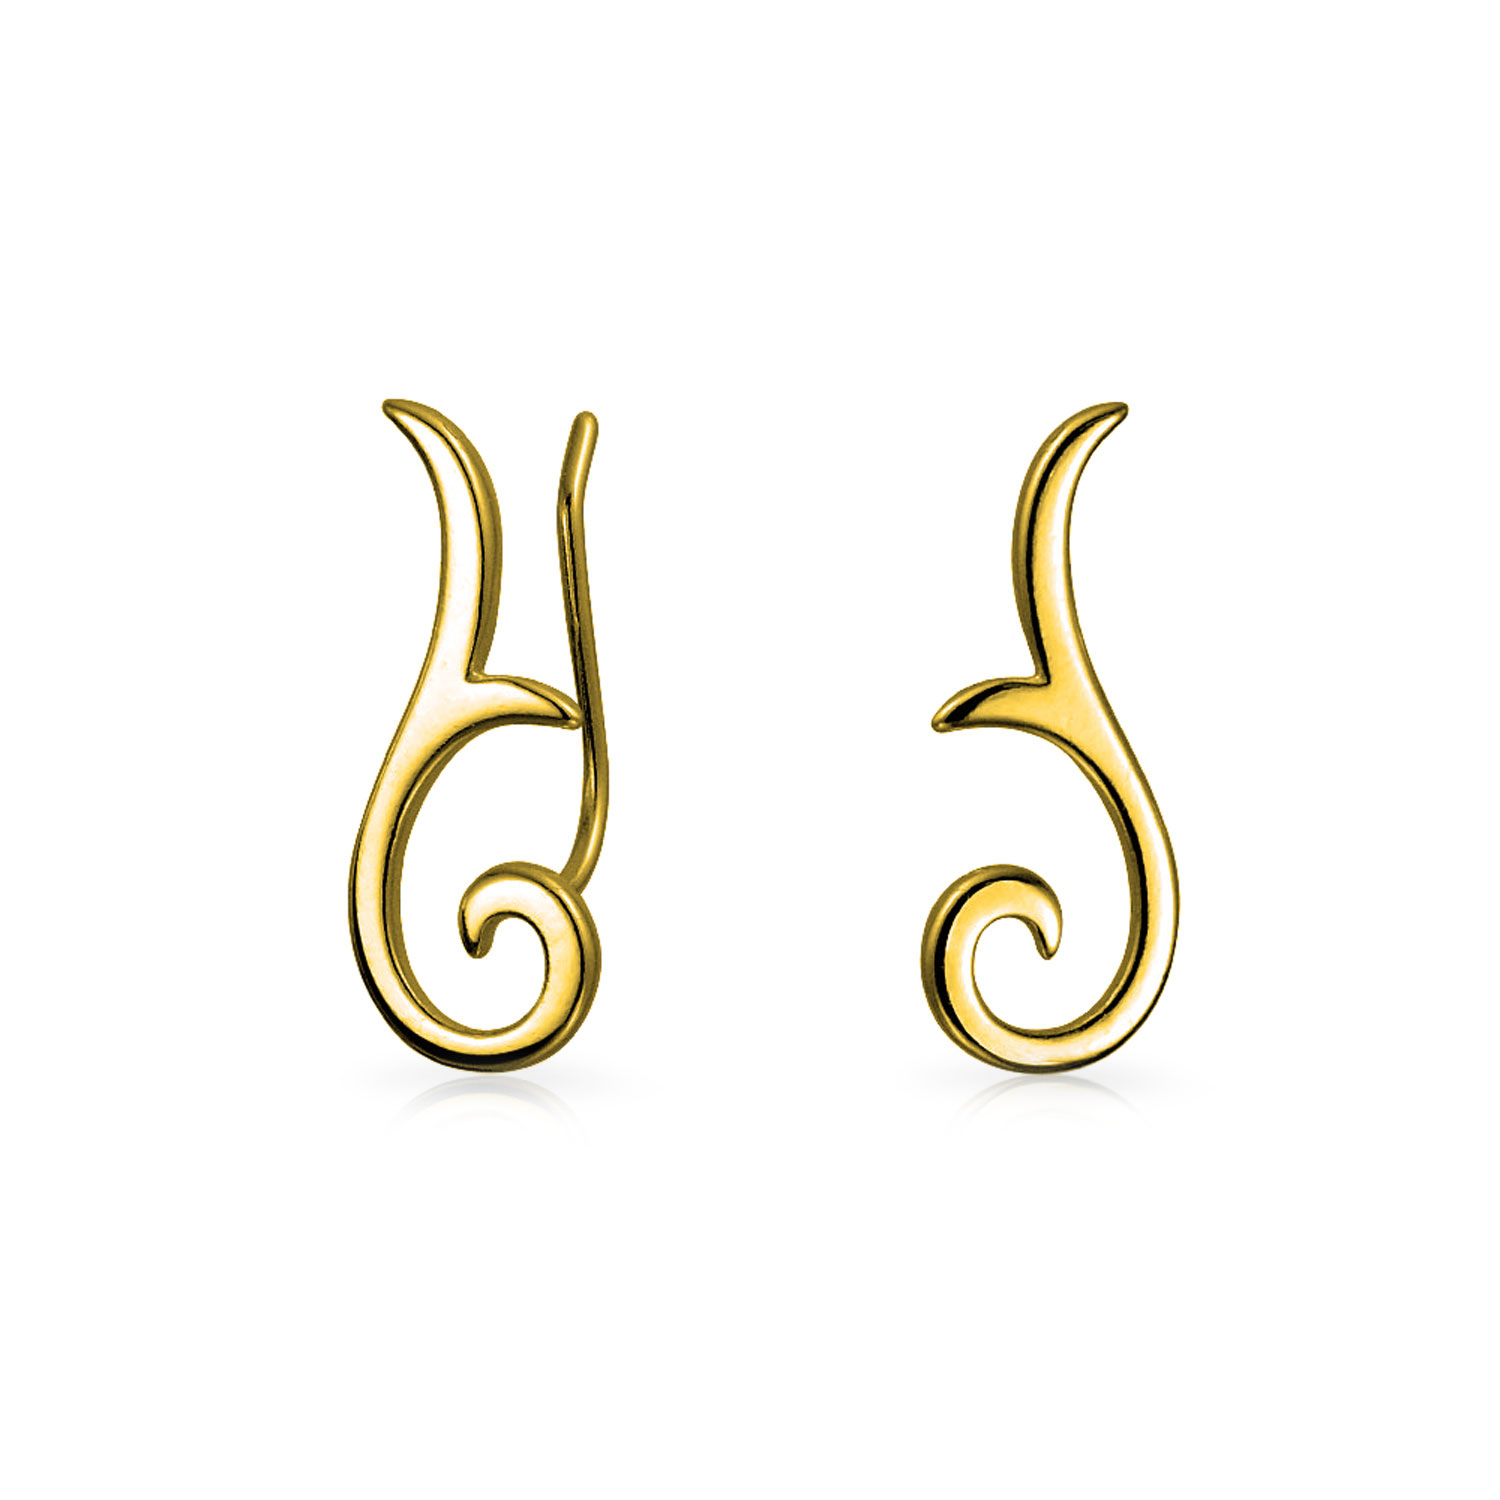 ad2f87785b678 Details about Geometric Ear Pin Crawlers Climbers Earrings 14k Gold Plated  Sterling Silver